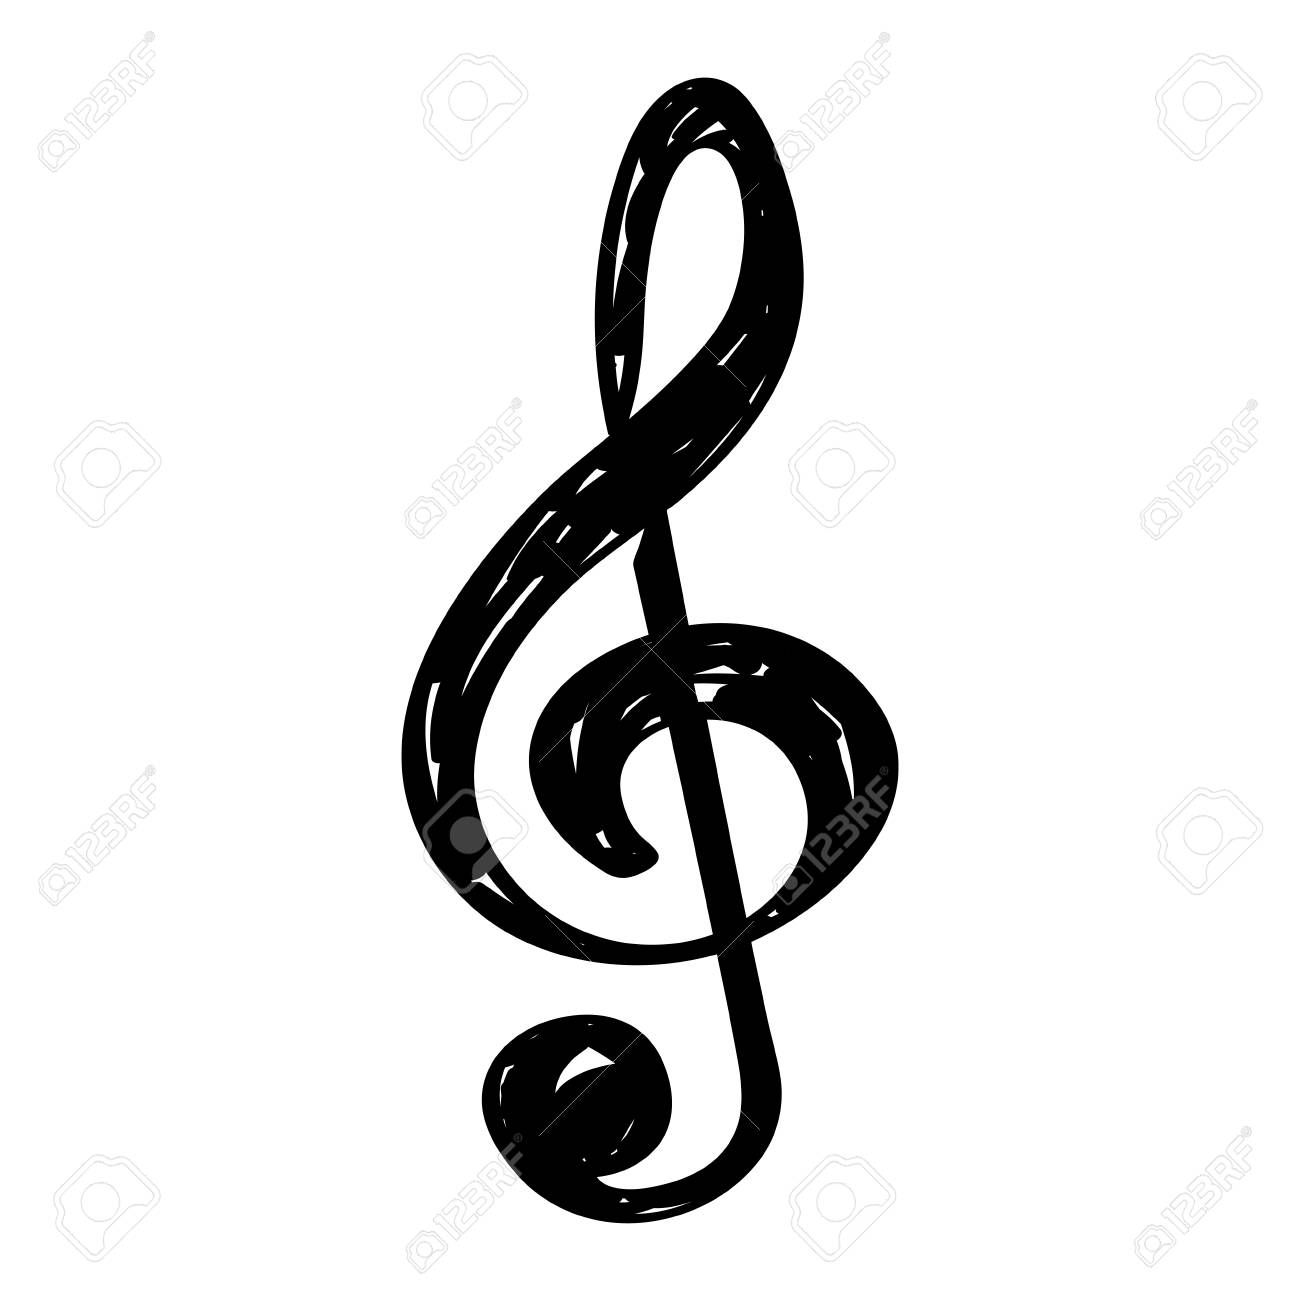 isolated sketch of a musical note treble clef vector illustration rh 123rf com treble clef vector download treble clef vector illustrator